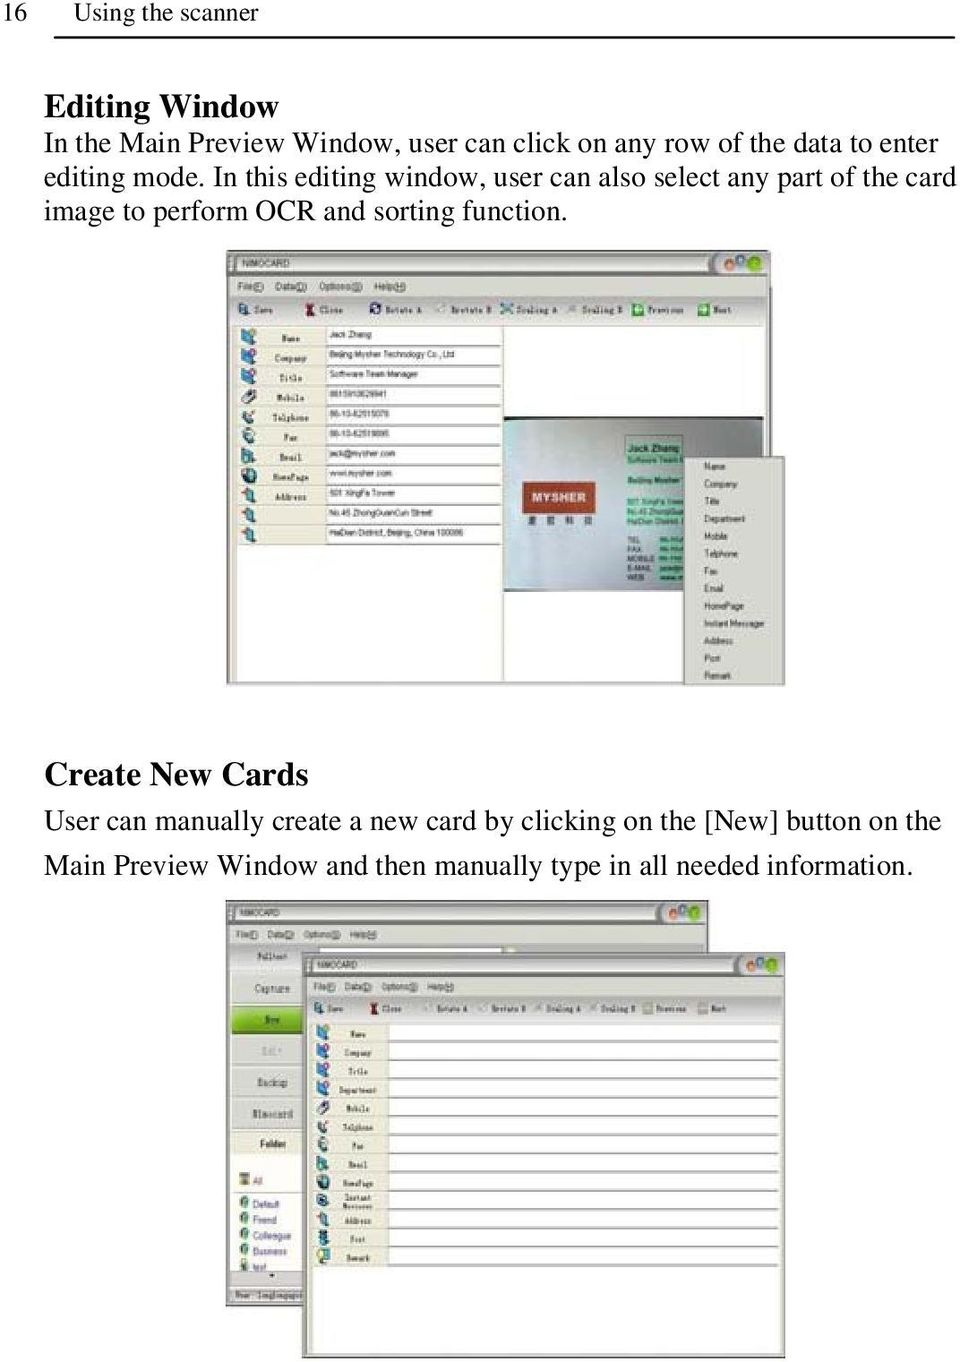 In this editing window, user can also select any part of the card image to perform OCR and sorting